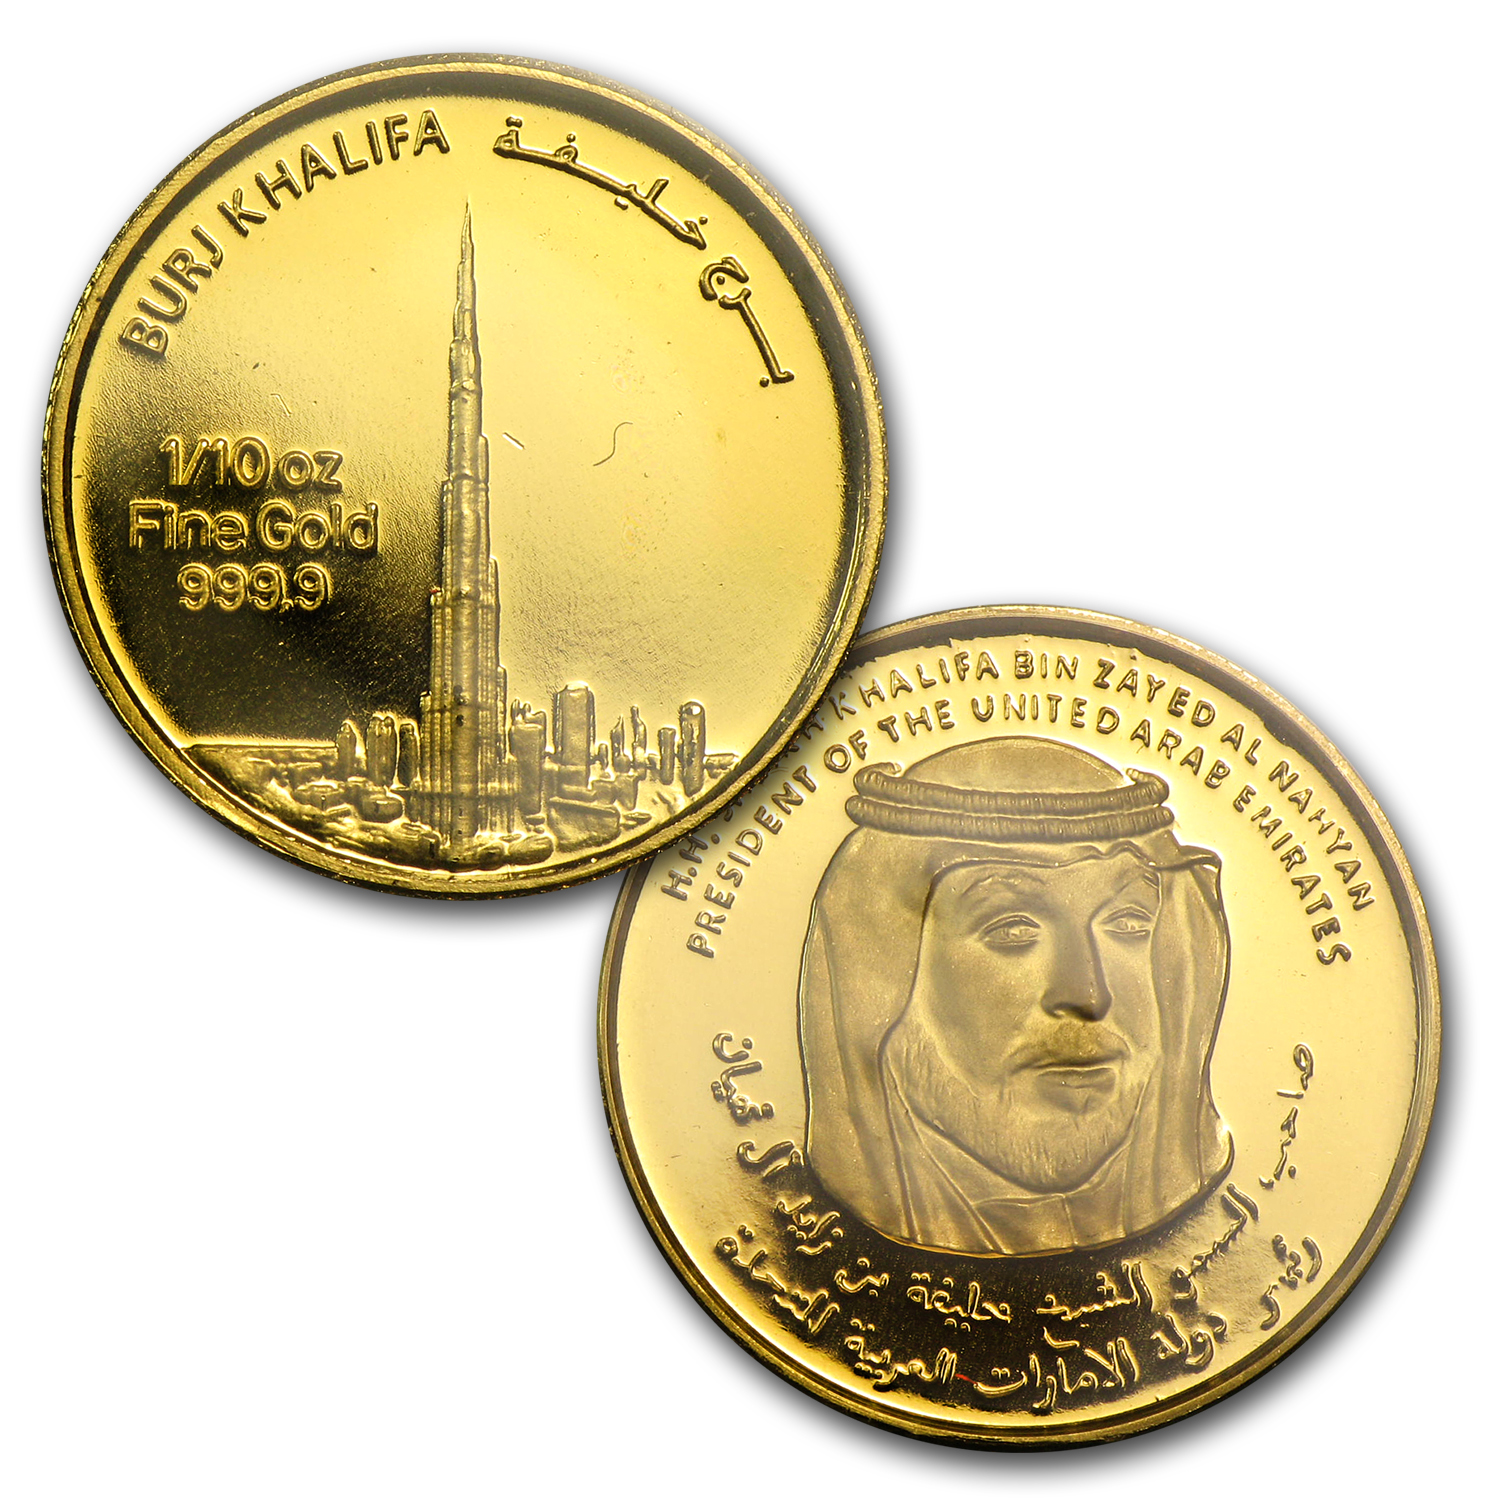 (4 pc) Gold Rounds - UAE 2012 Dubai Gold Burj Khalifa (1.85 oz)